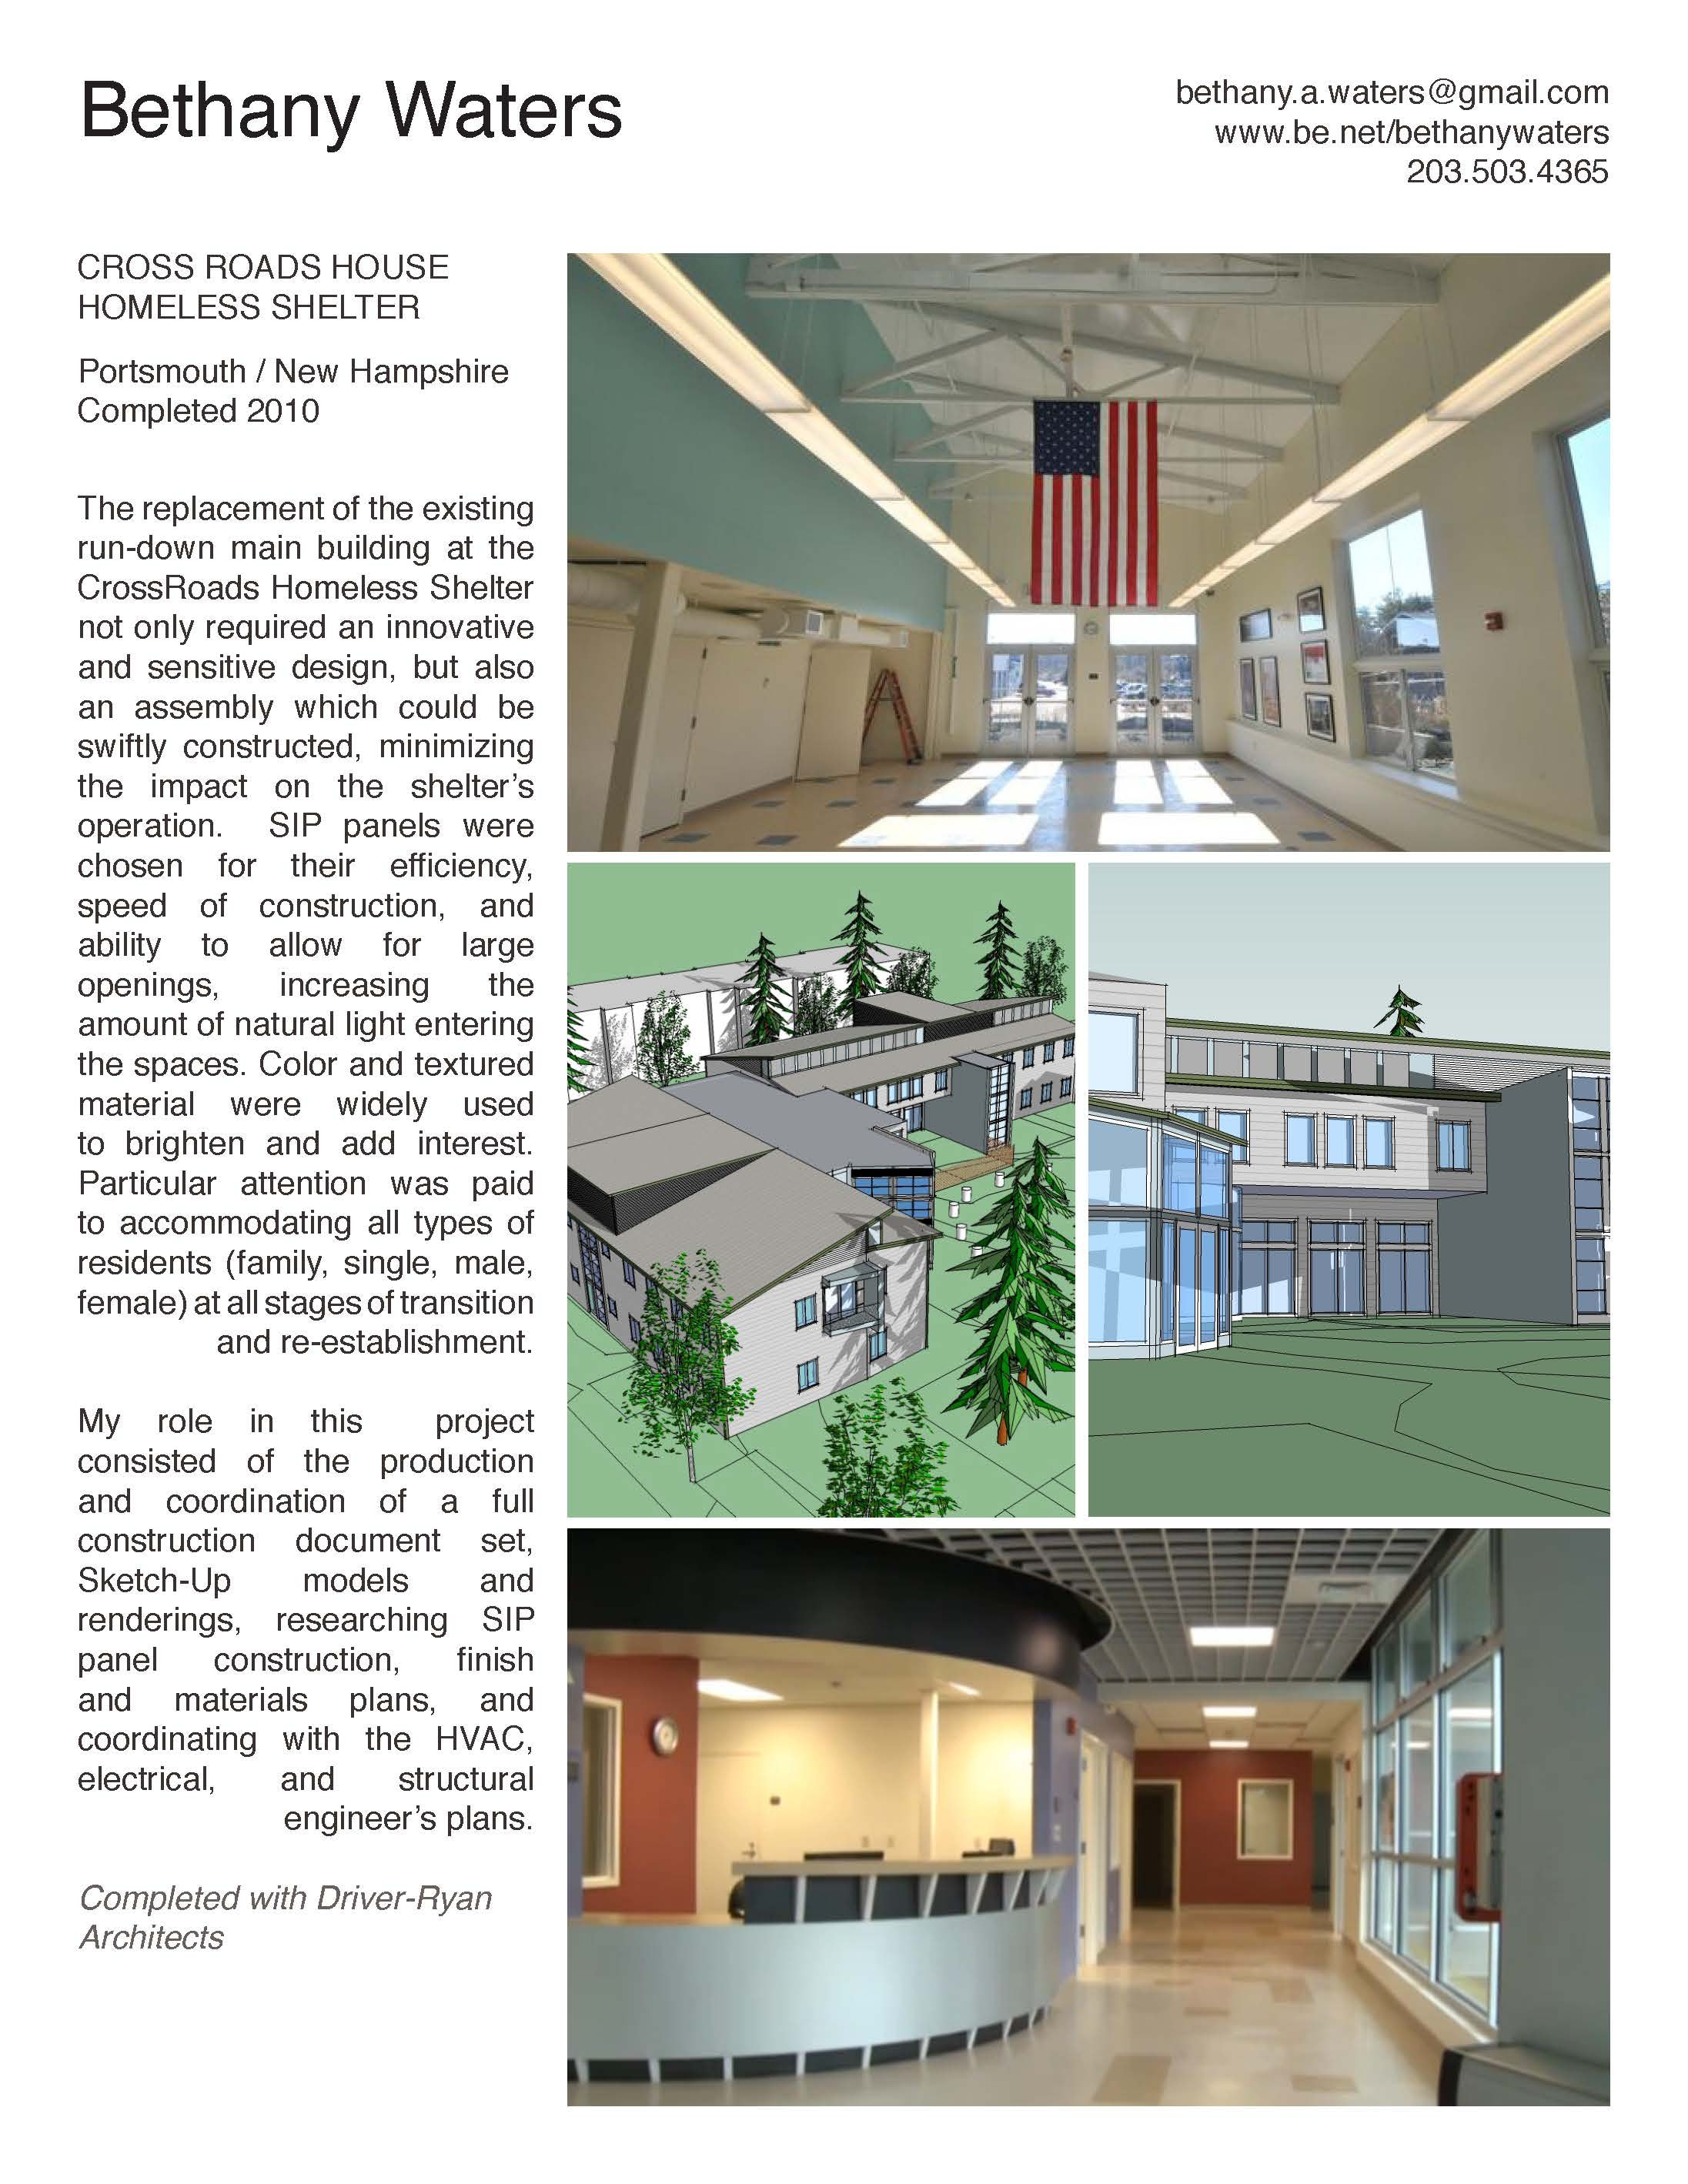 crossroads house homeless shelter bethany waters archinect rh archinect com